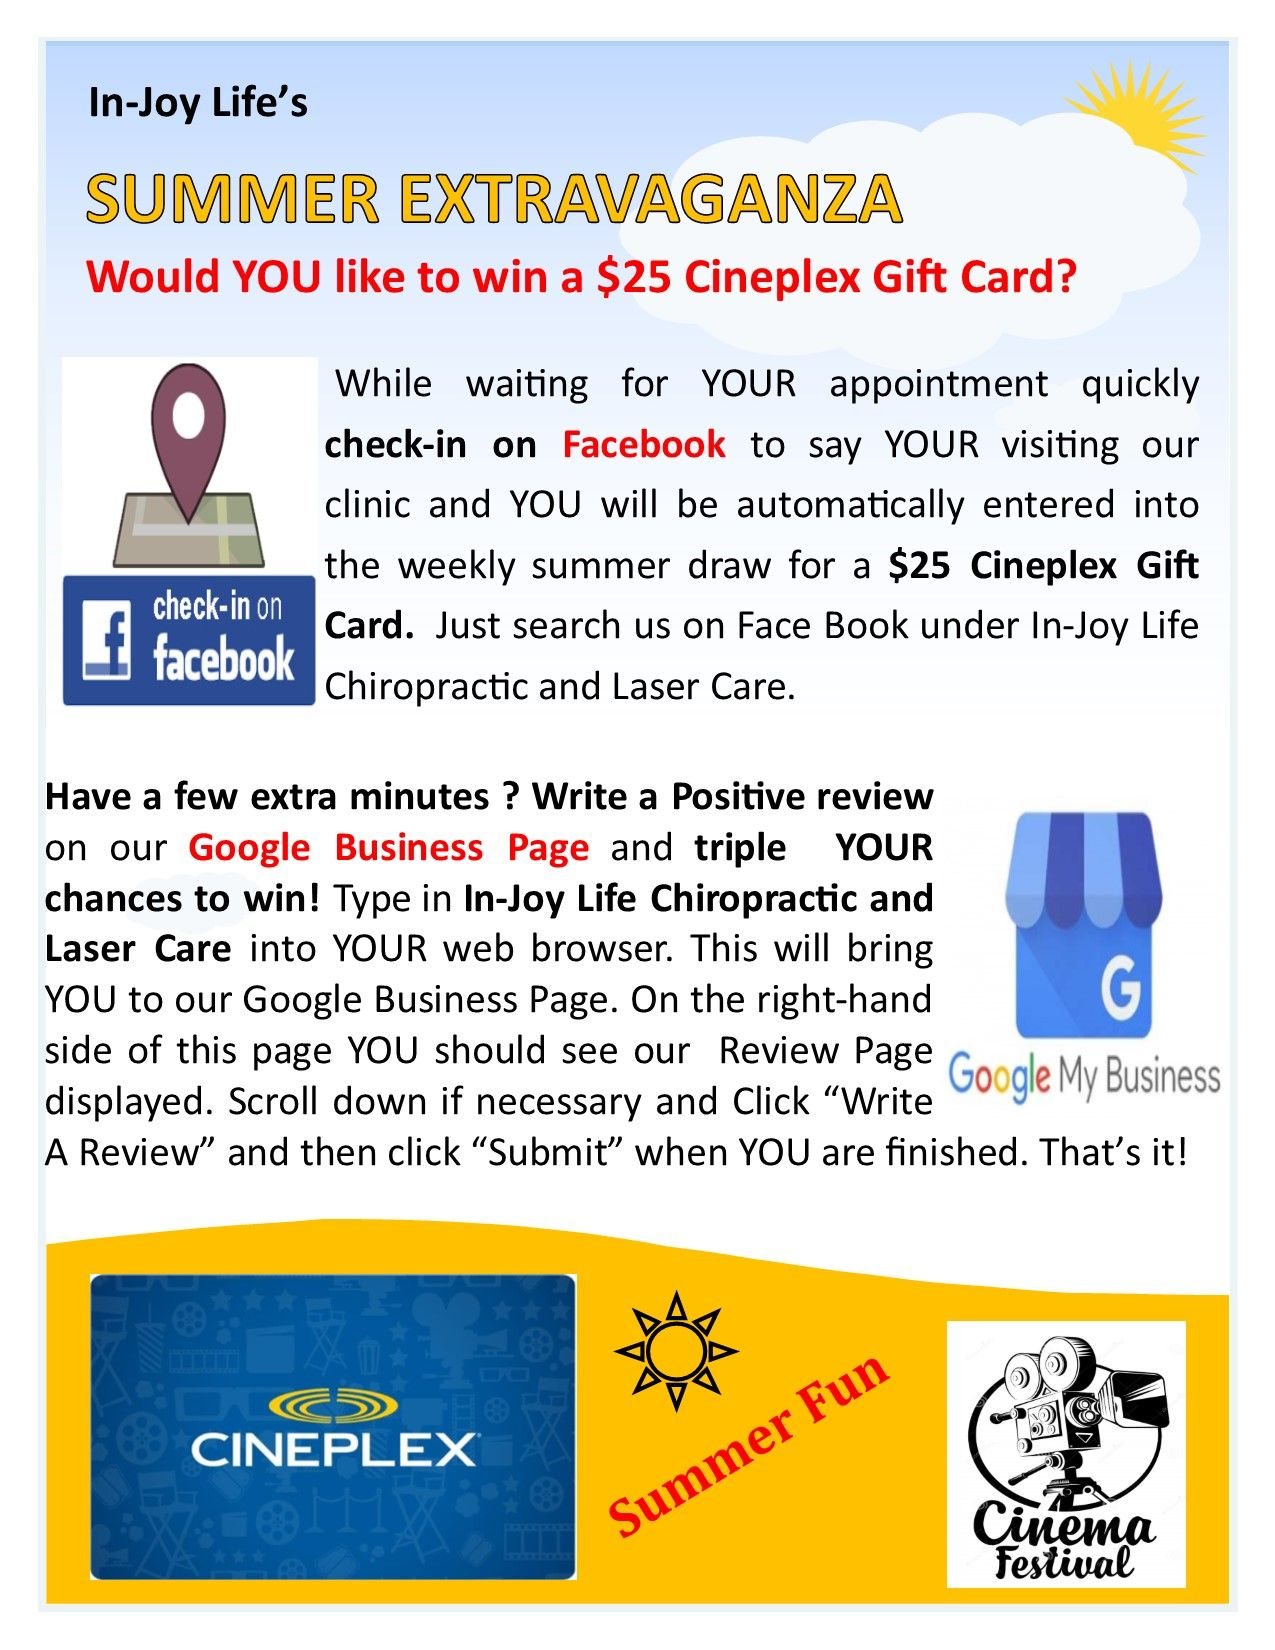 Don T Forget To Enter Our Summer Extravaganza Contest Write A Positive Review On Our Google Business Page Sea Business Pages Google Business Improve Yourself